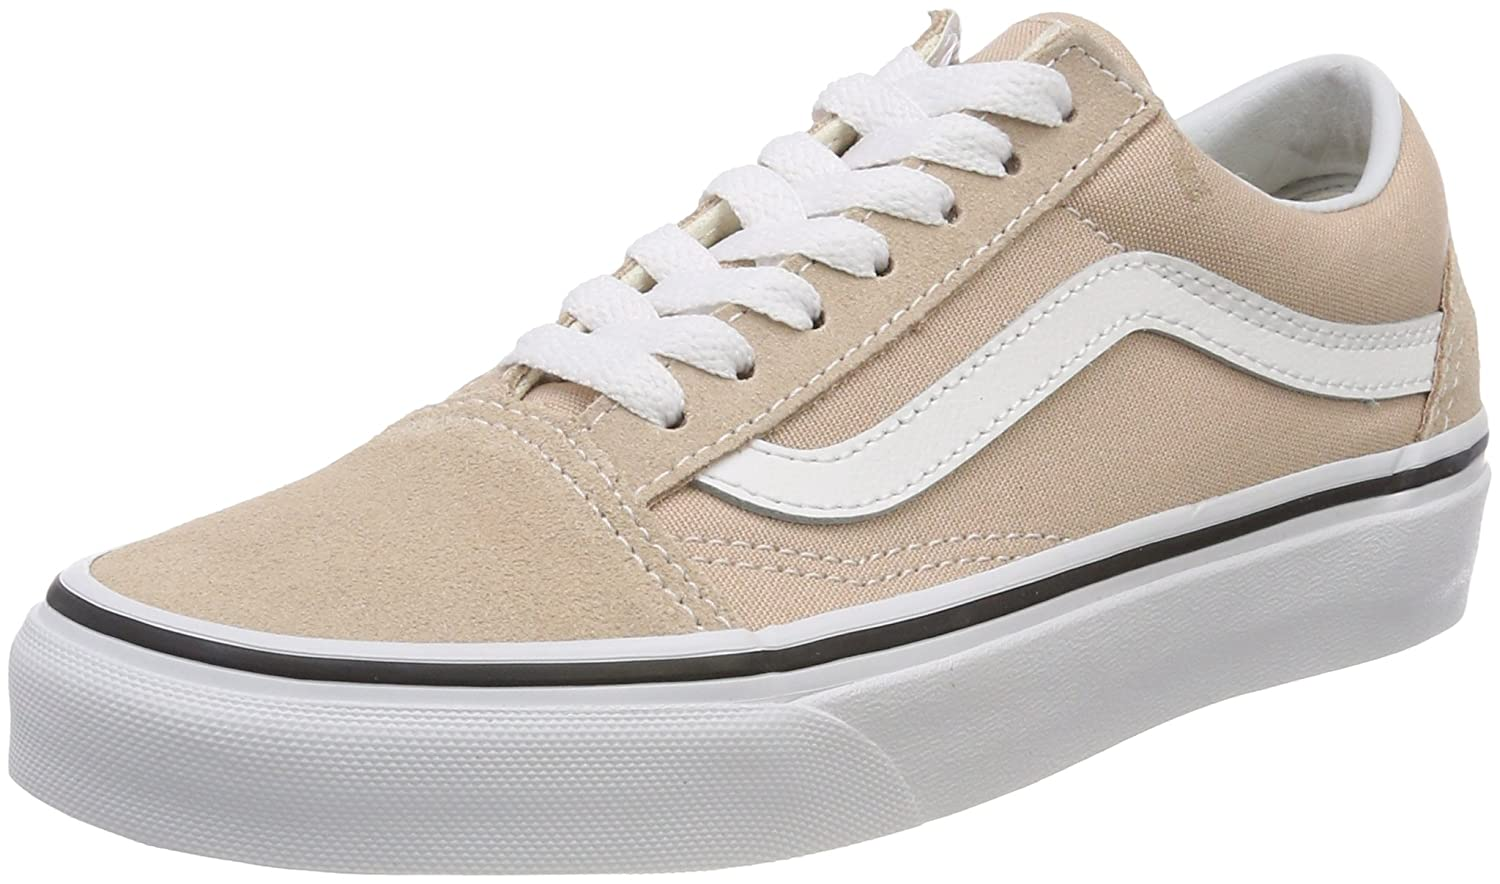 Vans Unisex Old Skool Classic Skate Shoes B074H98Q9G 9 Women / 7.5 M US Men|Frappe True White